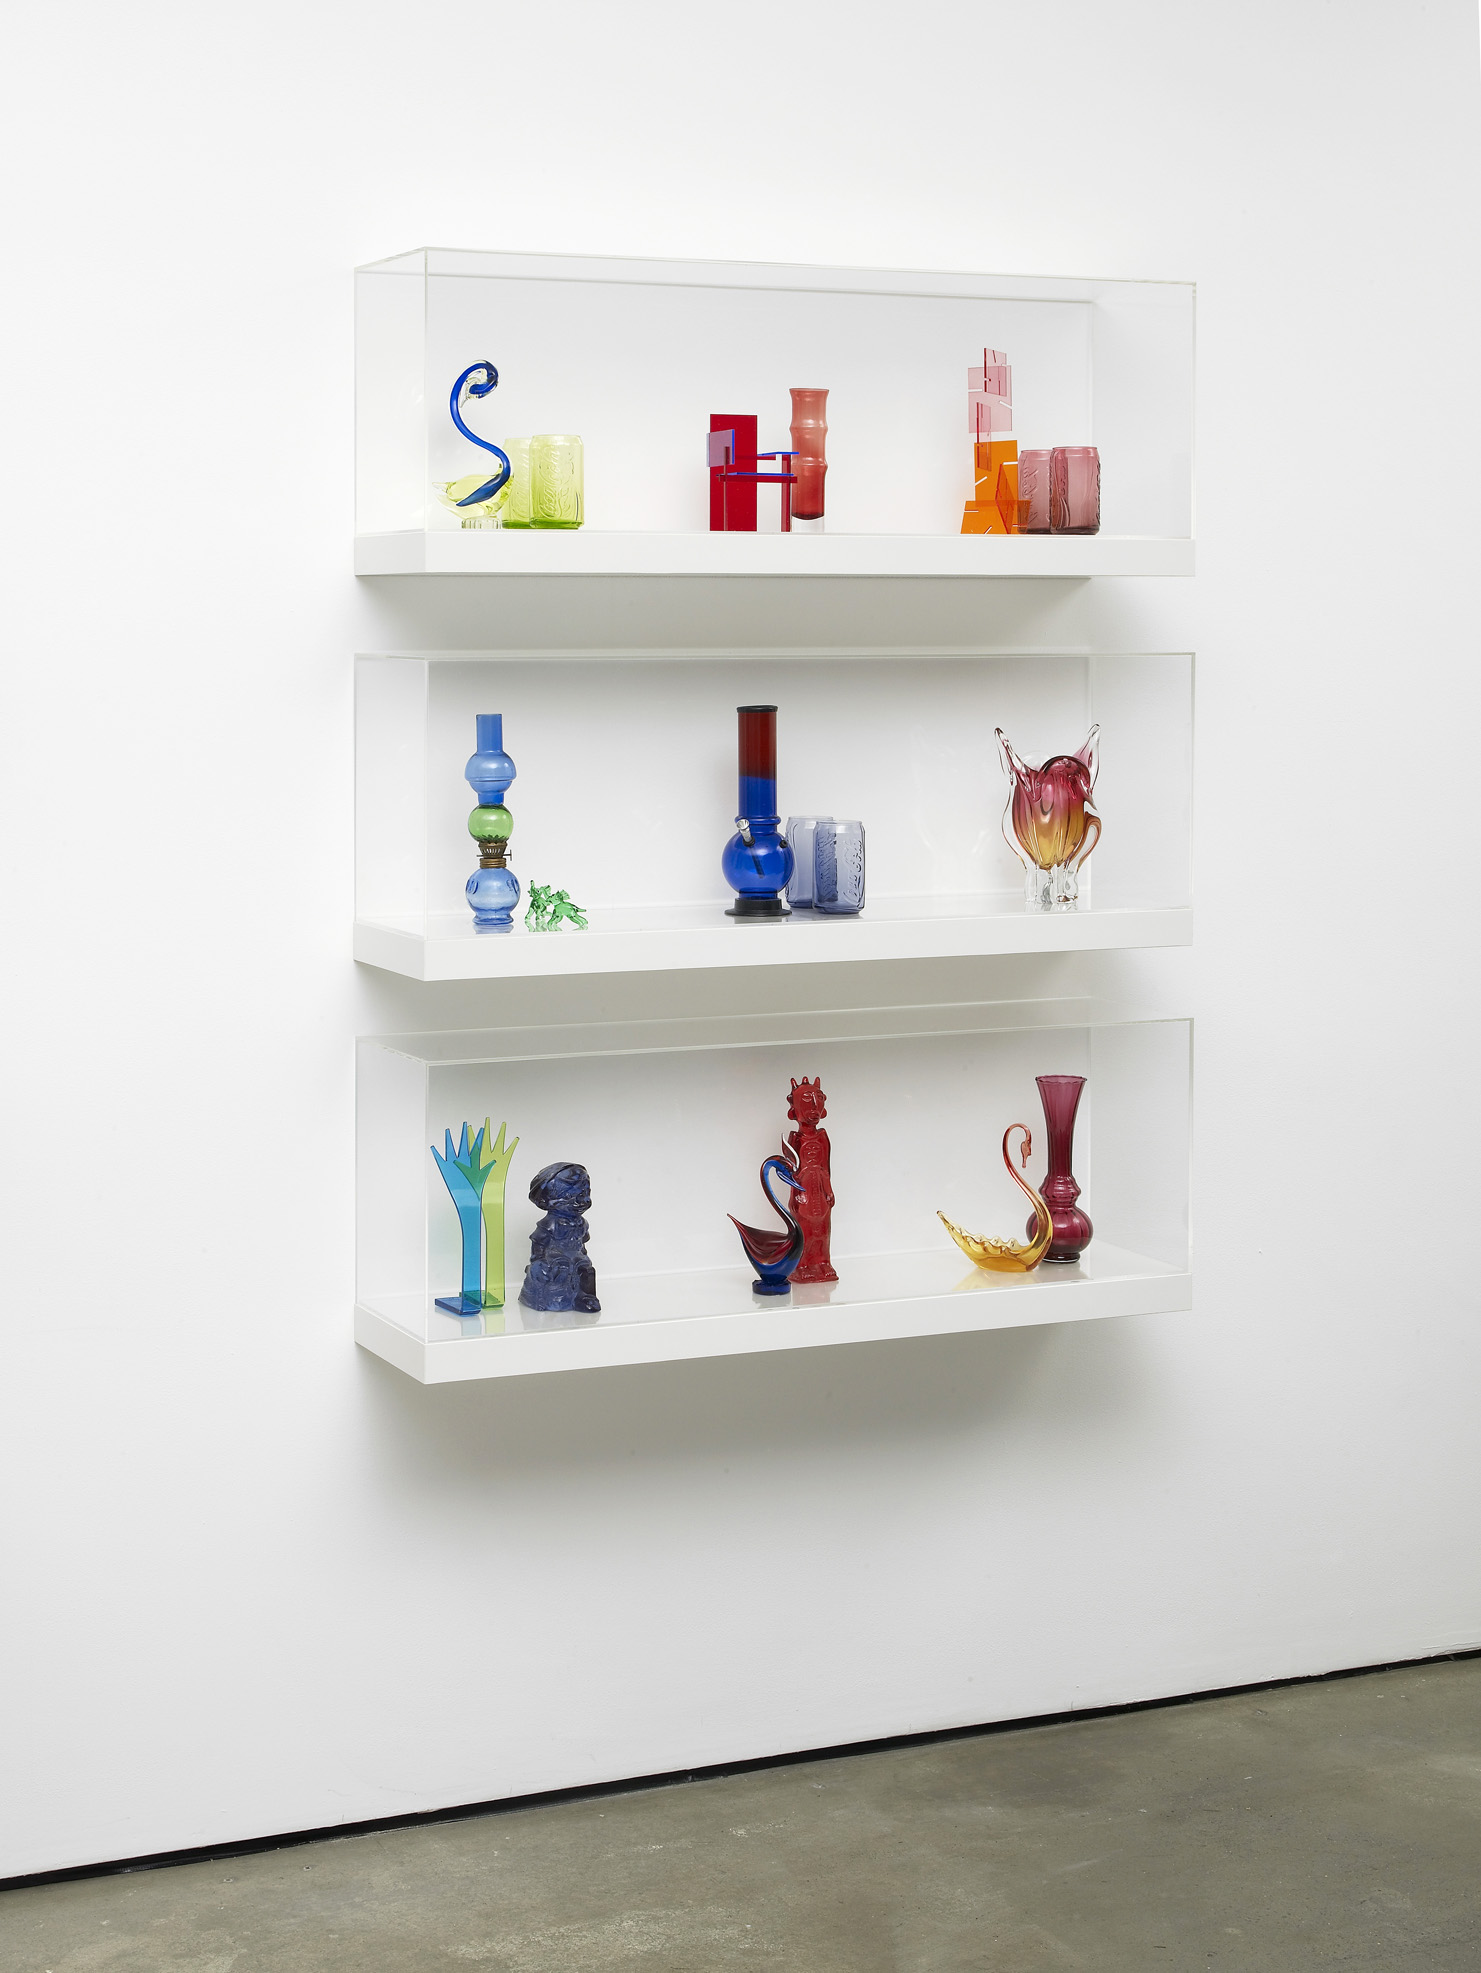 Untitled: Shelves No. 9 2011 Various glass and plastic components, shelving units, and perspex cases 140 x 110 x 30 cm